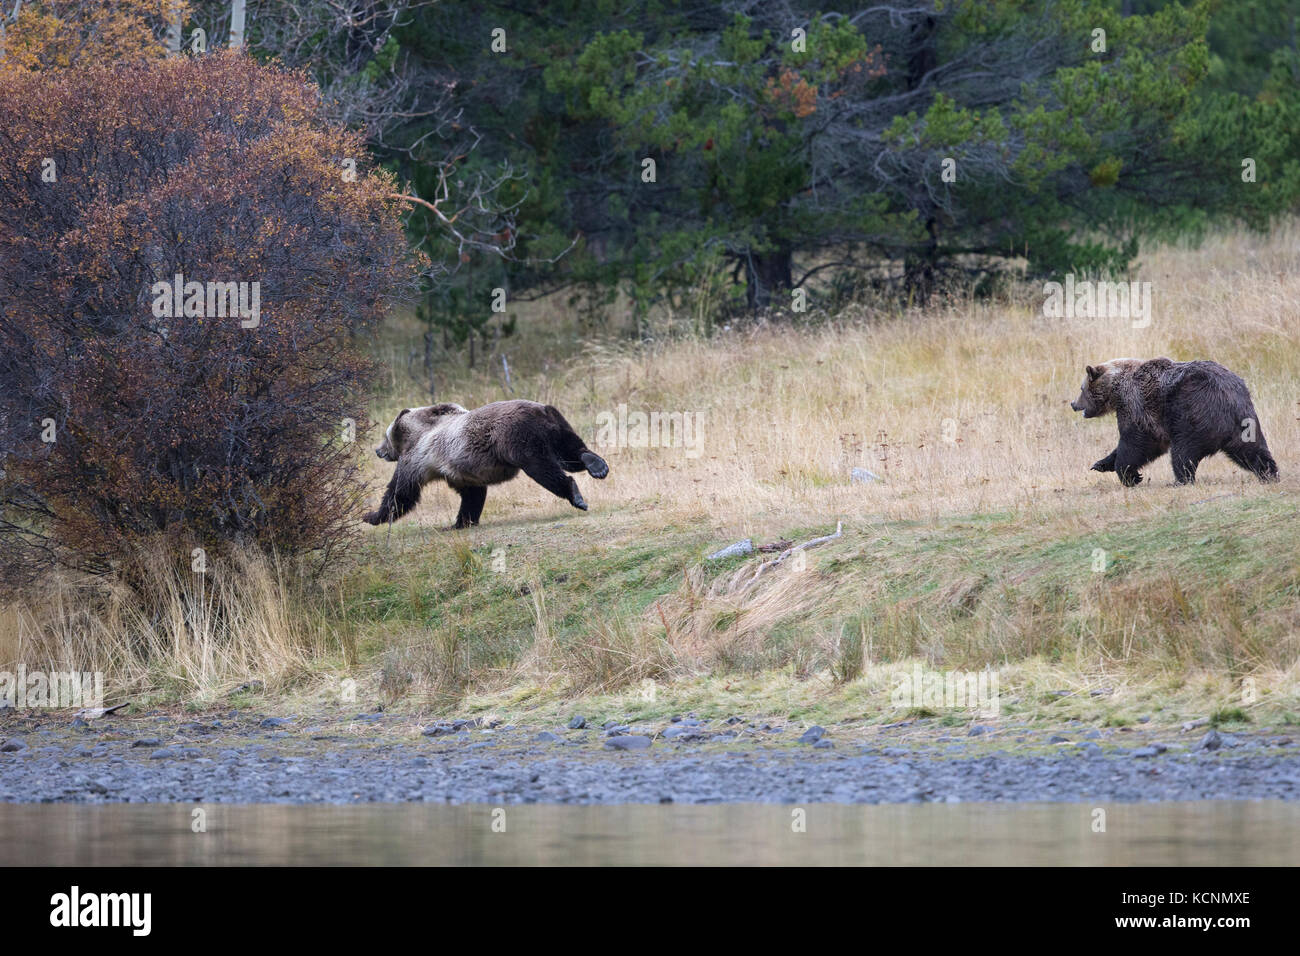 Grizzly bear (Ursus arctos horribilis), subadult (left) running from female who is chasing the subadult away from - Stock Image